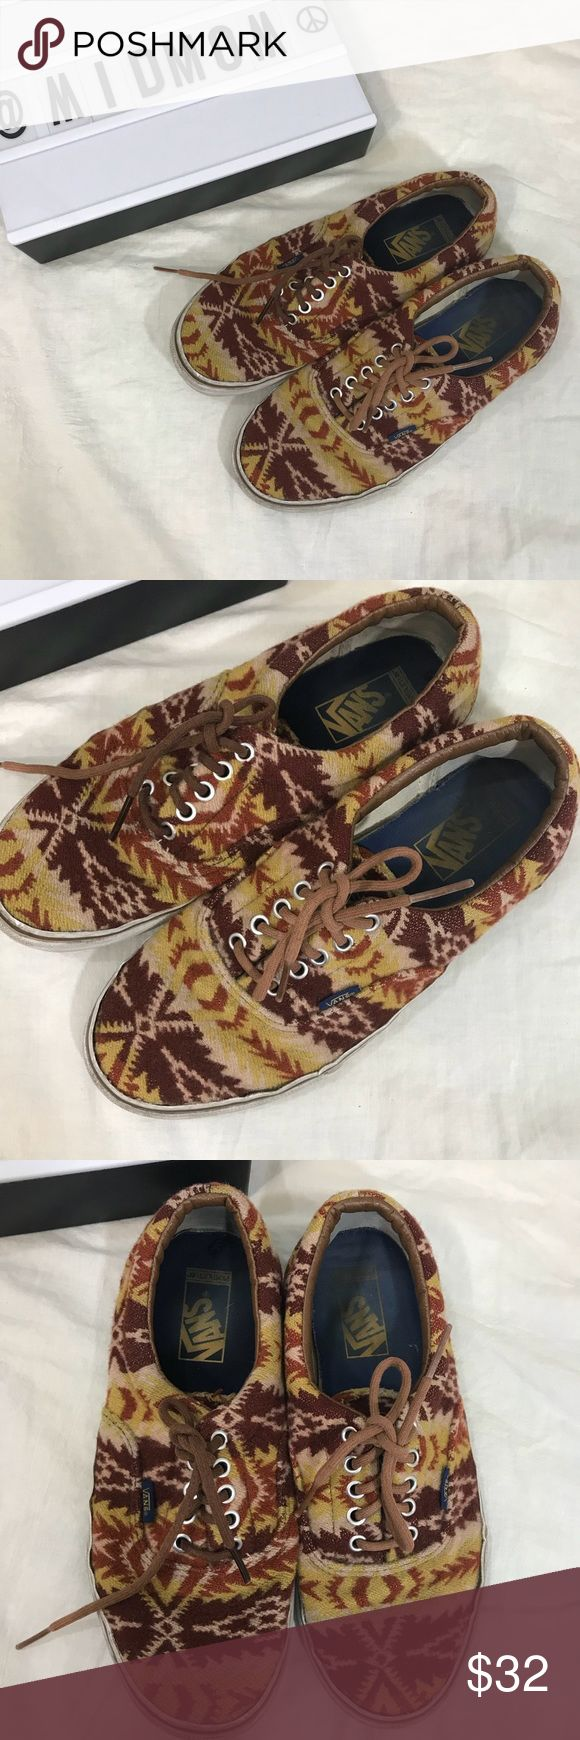 Pendleton Vans Sweet shoes!  I love everything Pendleton!  Wear to white around the edges.  Some staining on footbed.  No smells, washed and clean.  For men's 9.5 women 11 Vans Shoes Sneakers